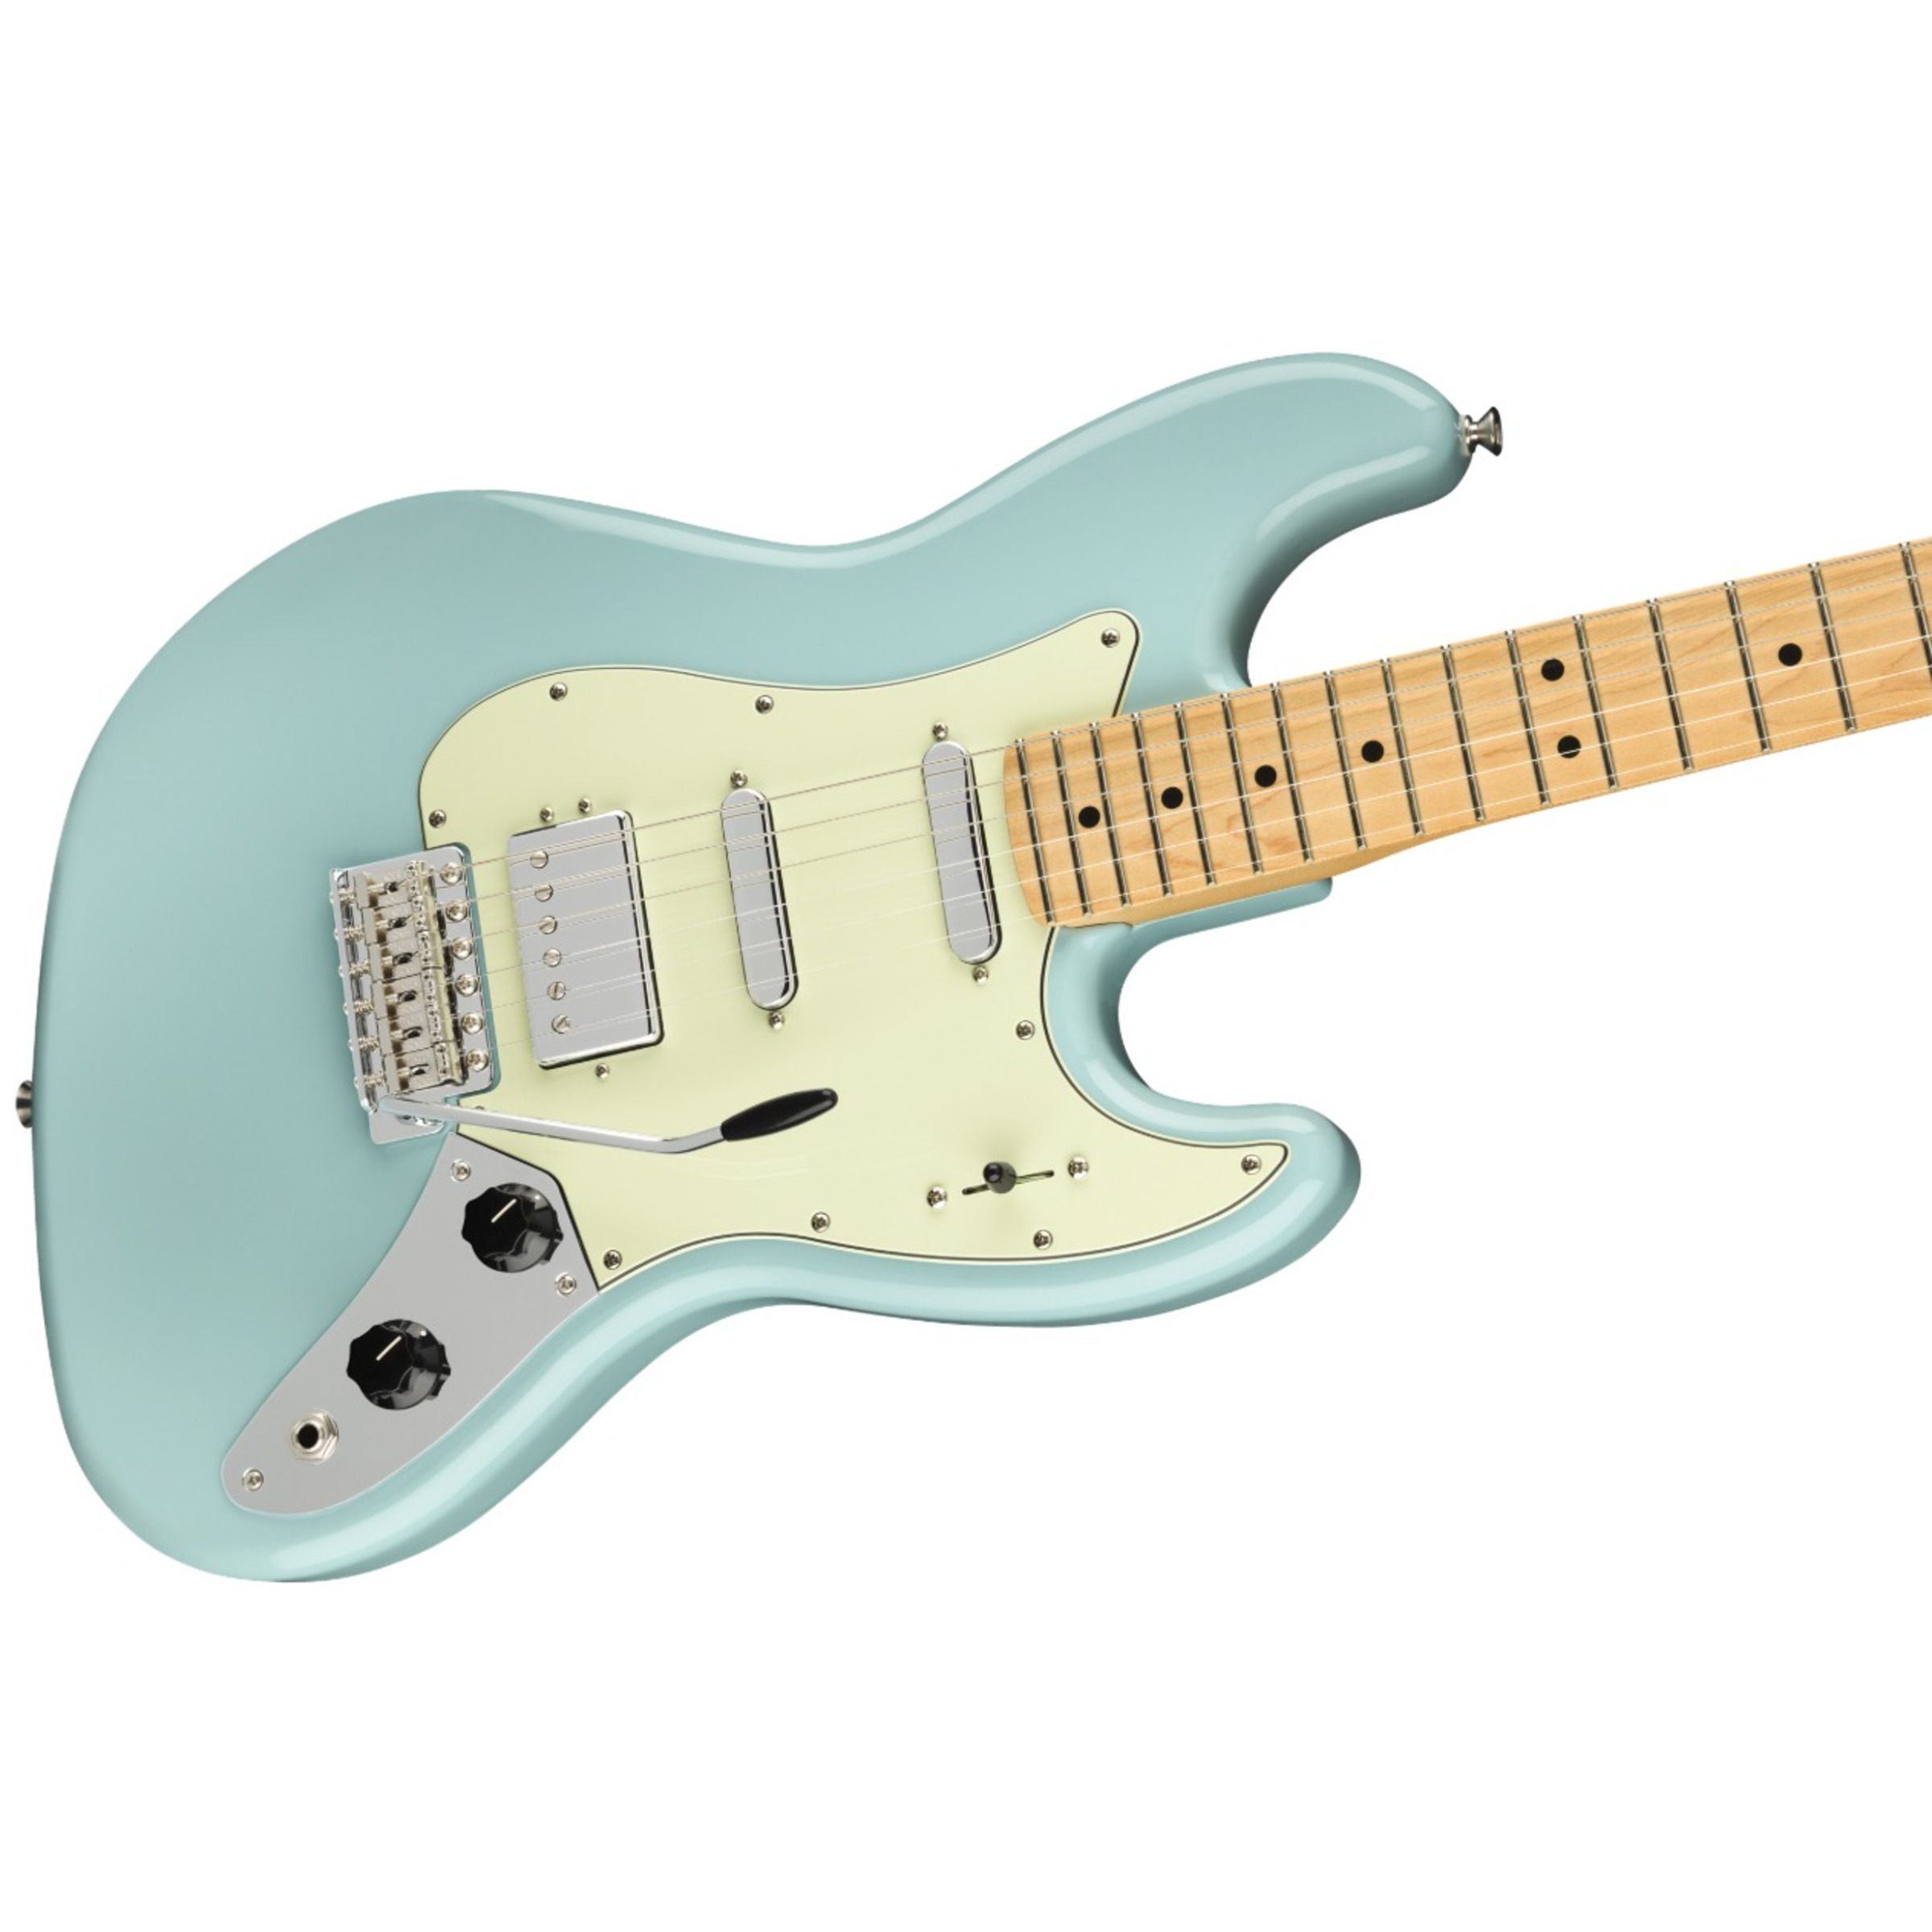 fender limited edition sixty six electric guitar daphne blue giggear. Black Bedroom Furniture Sets. Home Design Ideas